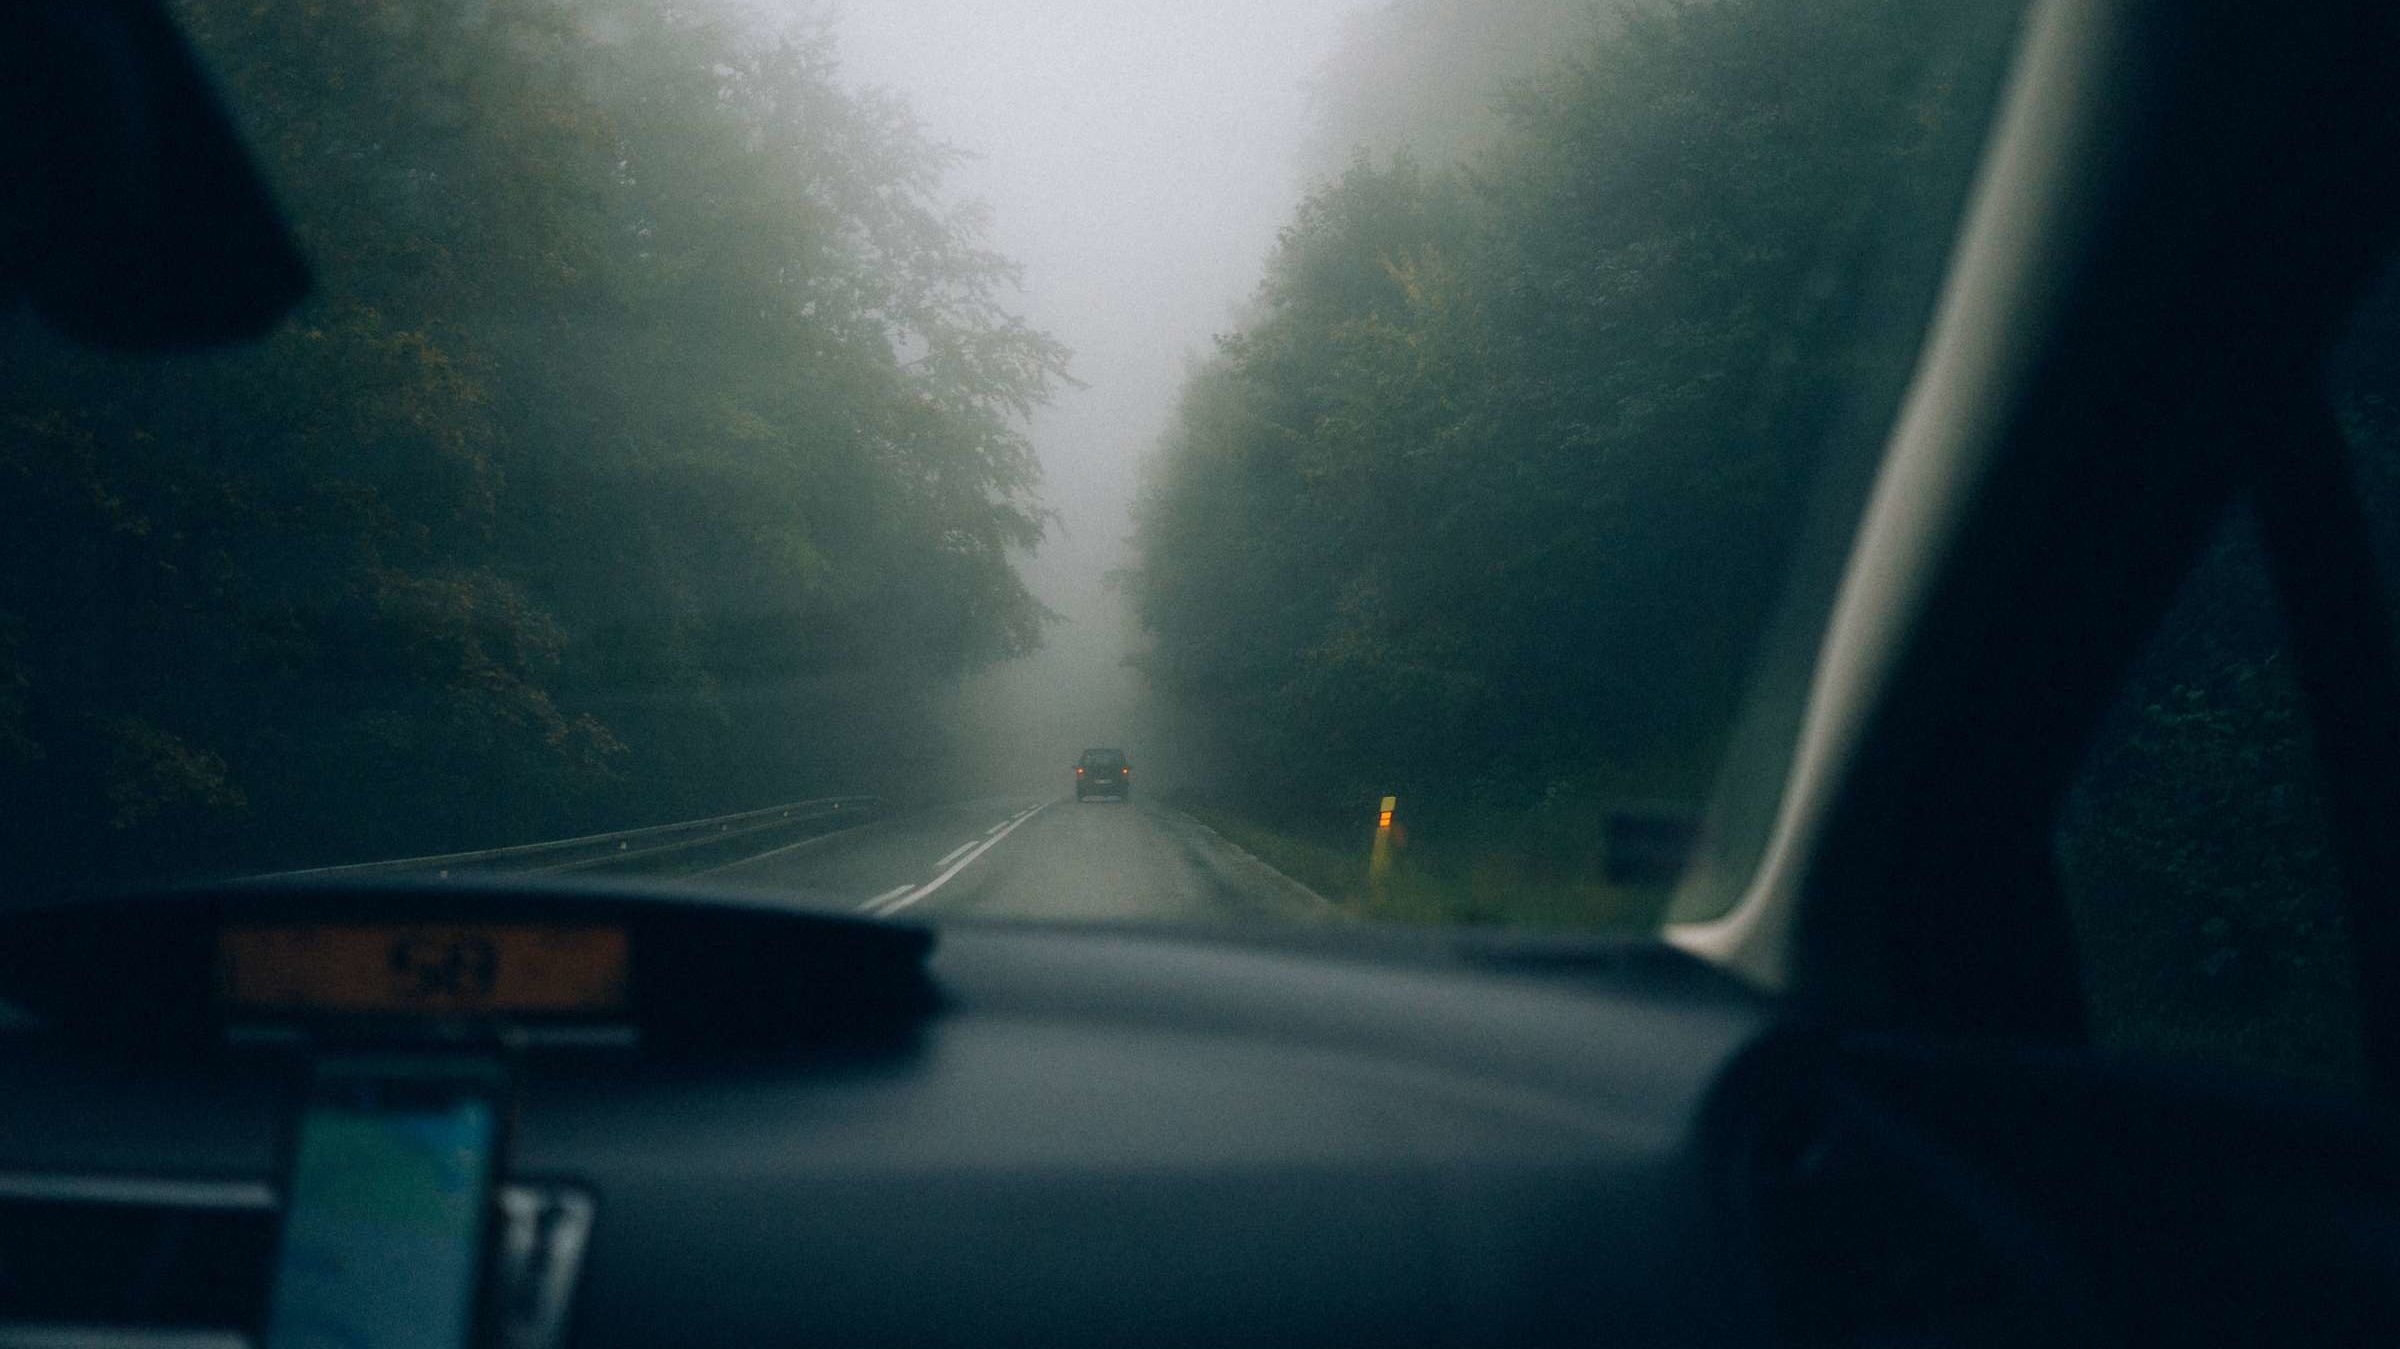 How to Defog Your Windshield, According to a Former NASA Engineer